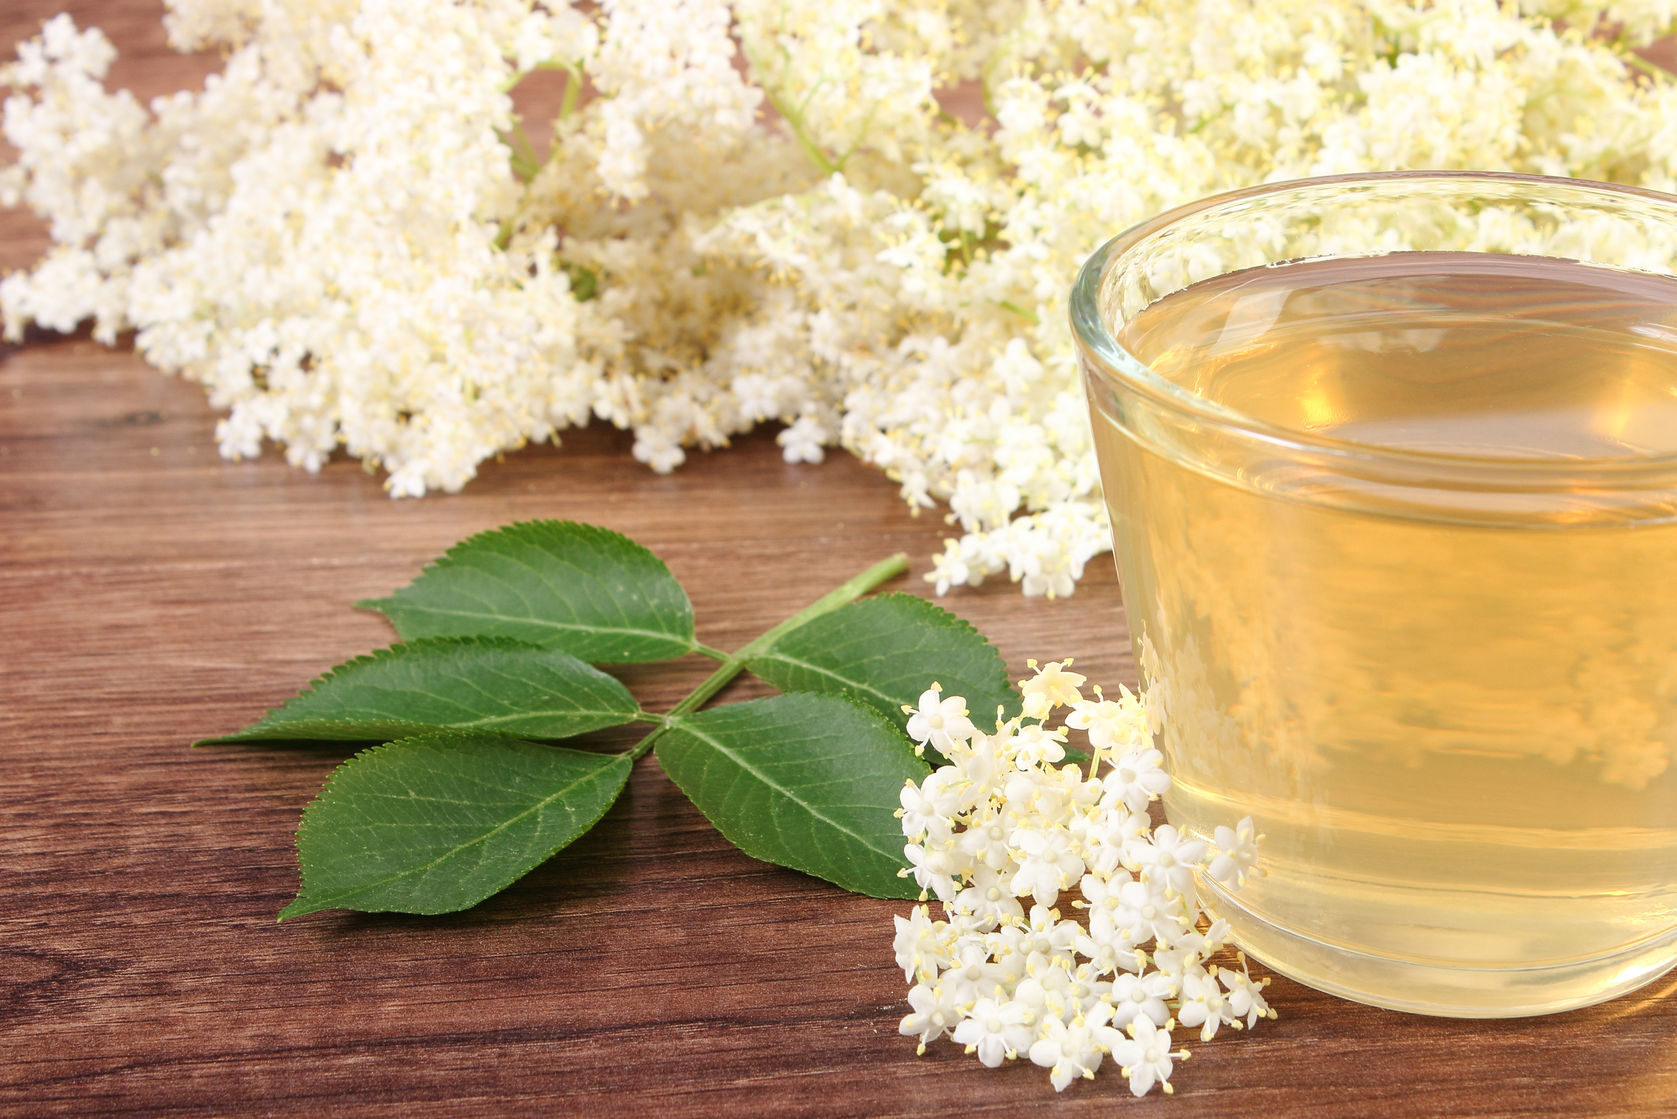 61807219 - glass of refreshment healthy juice and elderberry flowers on rustic board, alternative medicine and therapy